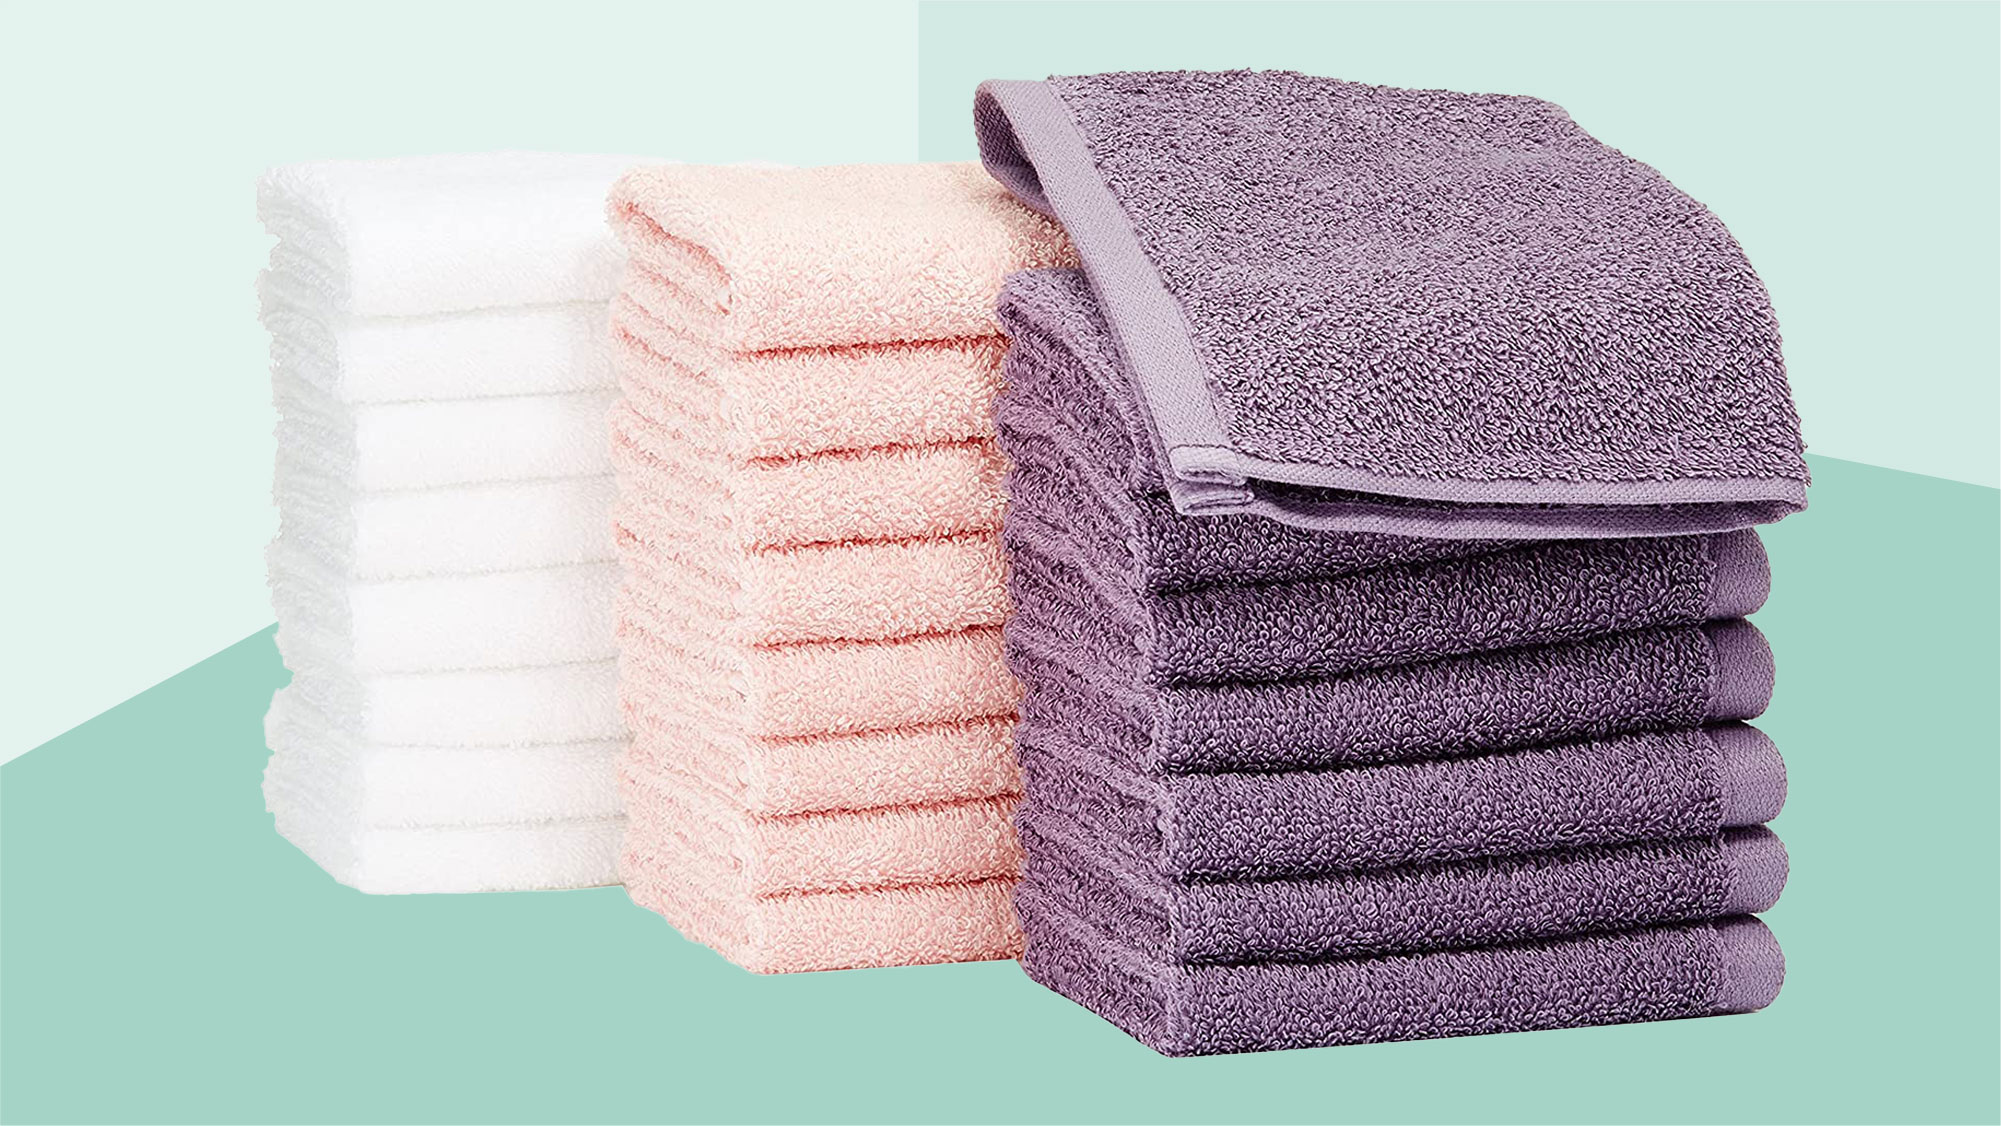 Amazon Basics Fast Drying, Extra Absorbent, Terry Cotton Washcloths